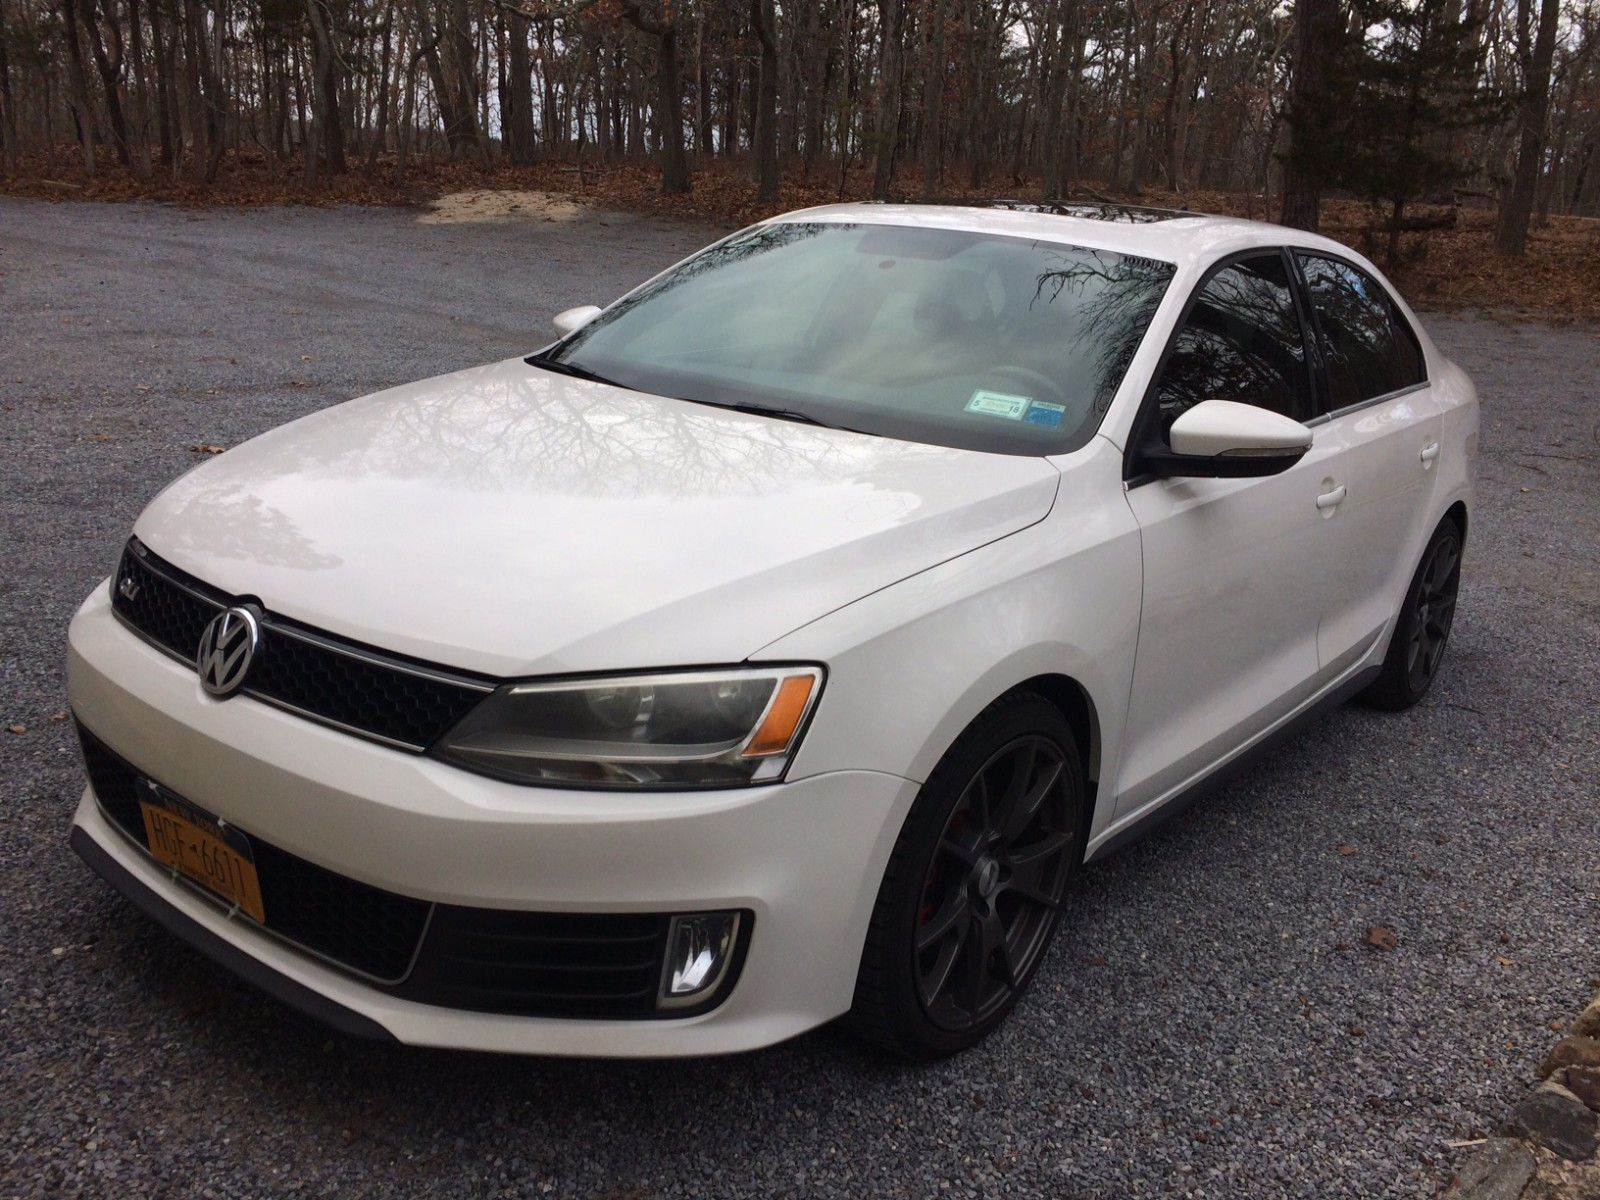 The 25 best volkswagen jetta 2012 ideas on pinterest jetta 2012 volkswagen jetta and 2012 jetta